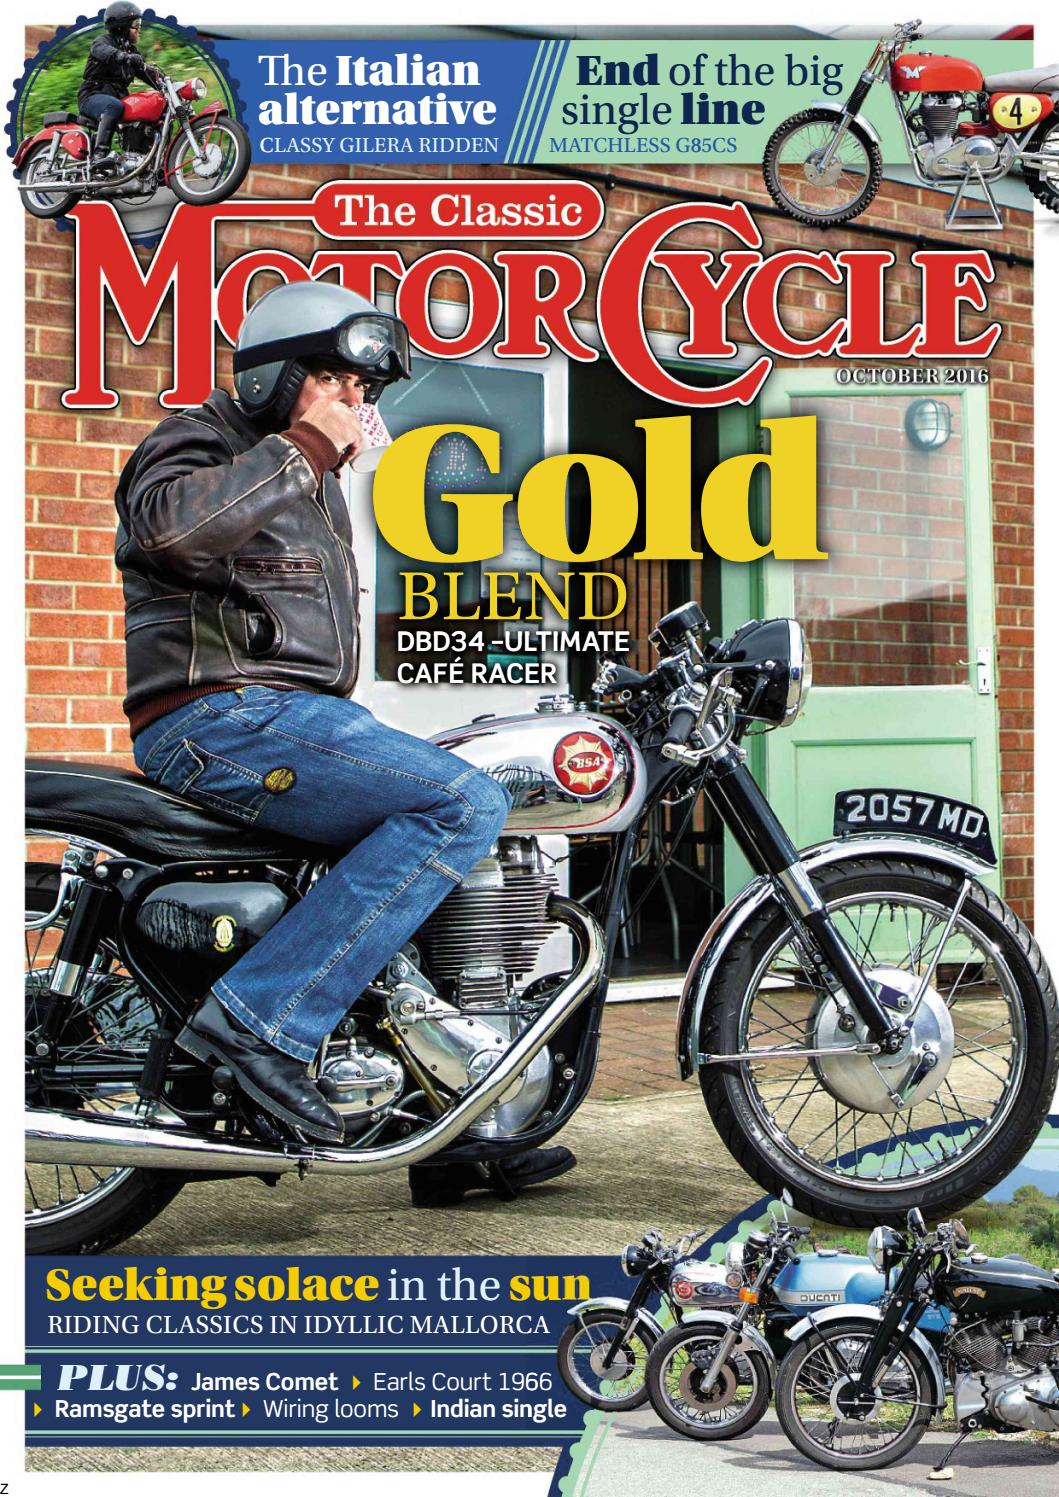 The Classic Motorcycle October 2016 Preview By Mortons Media Group Wiring Looms Ltd Issuu